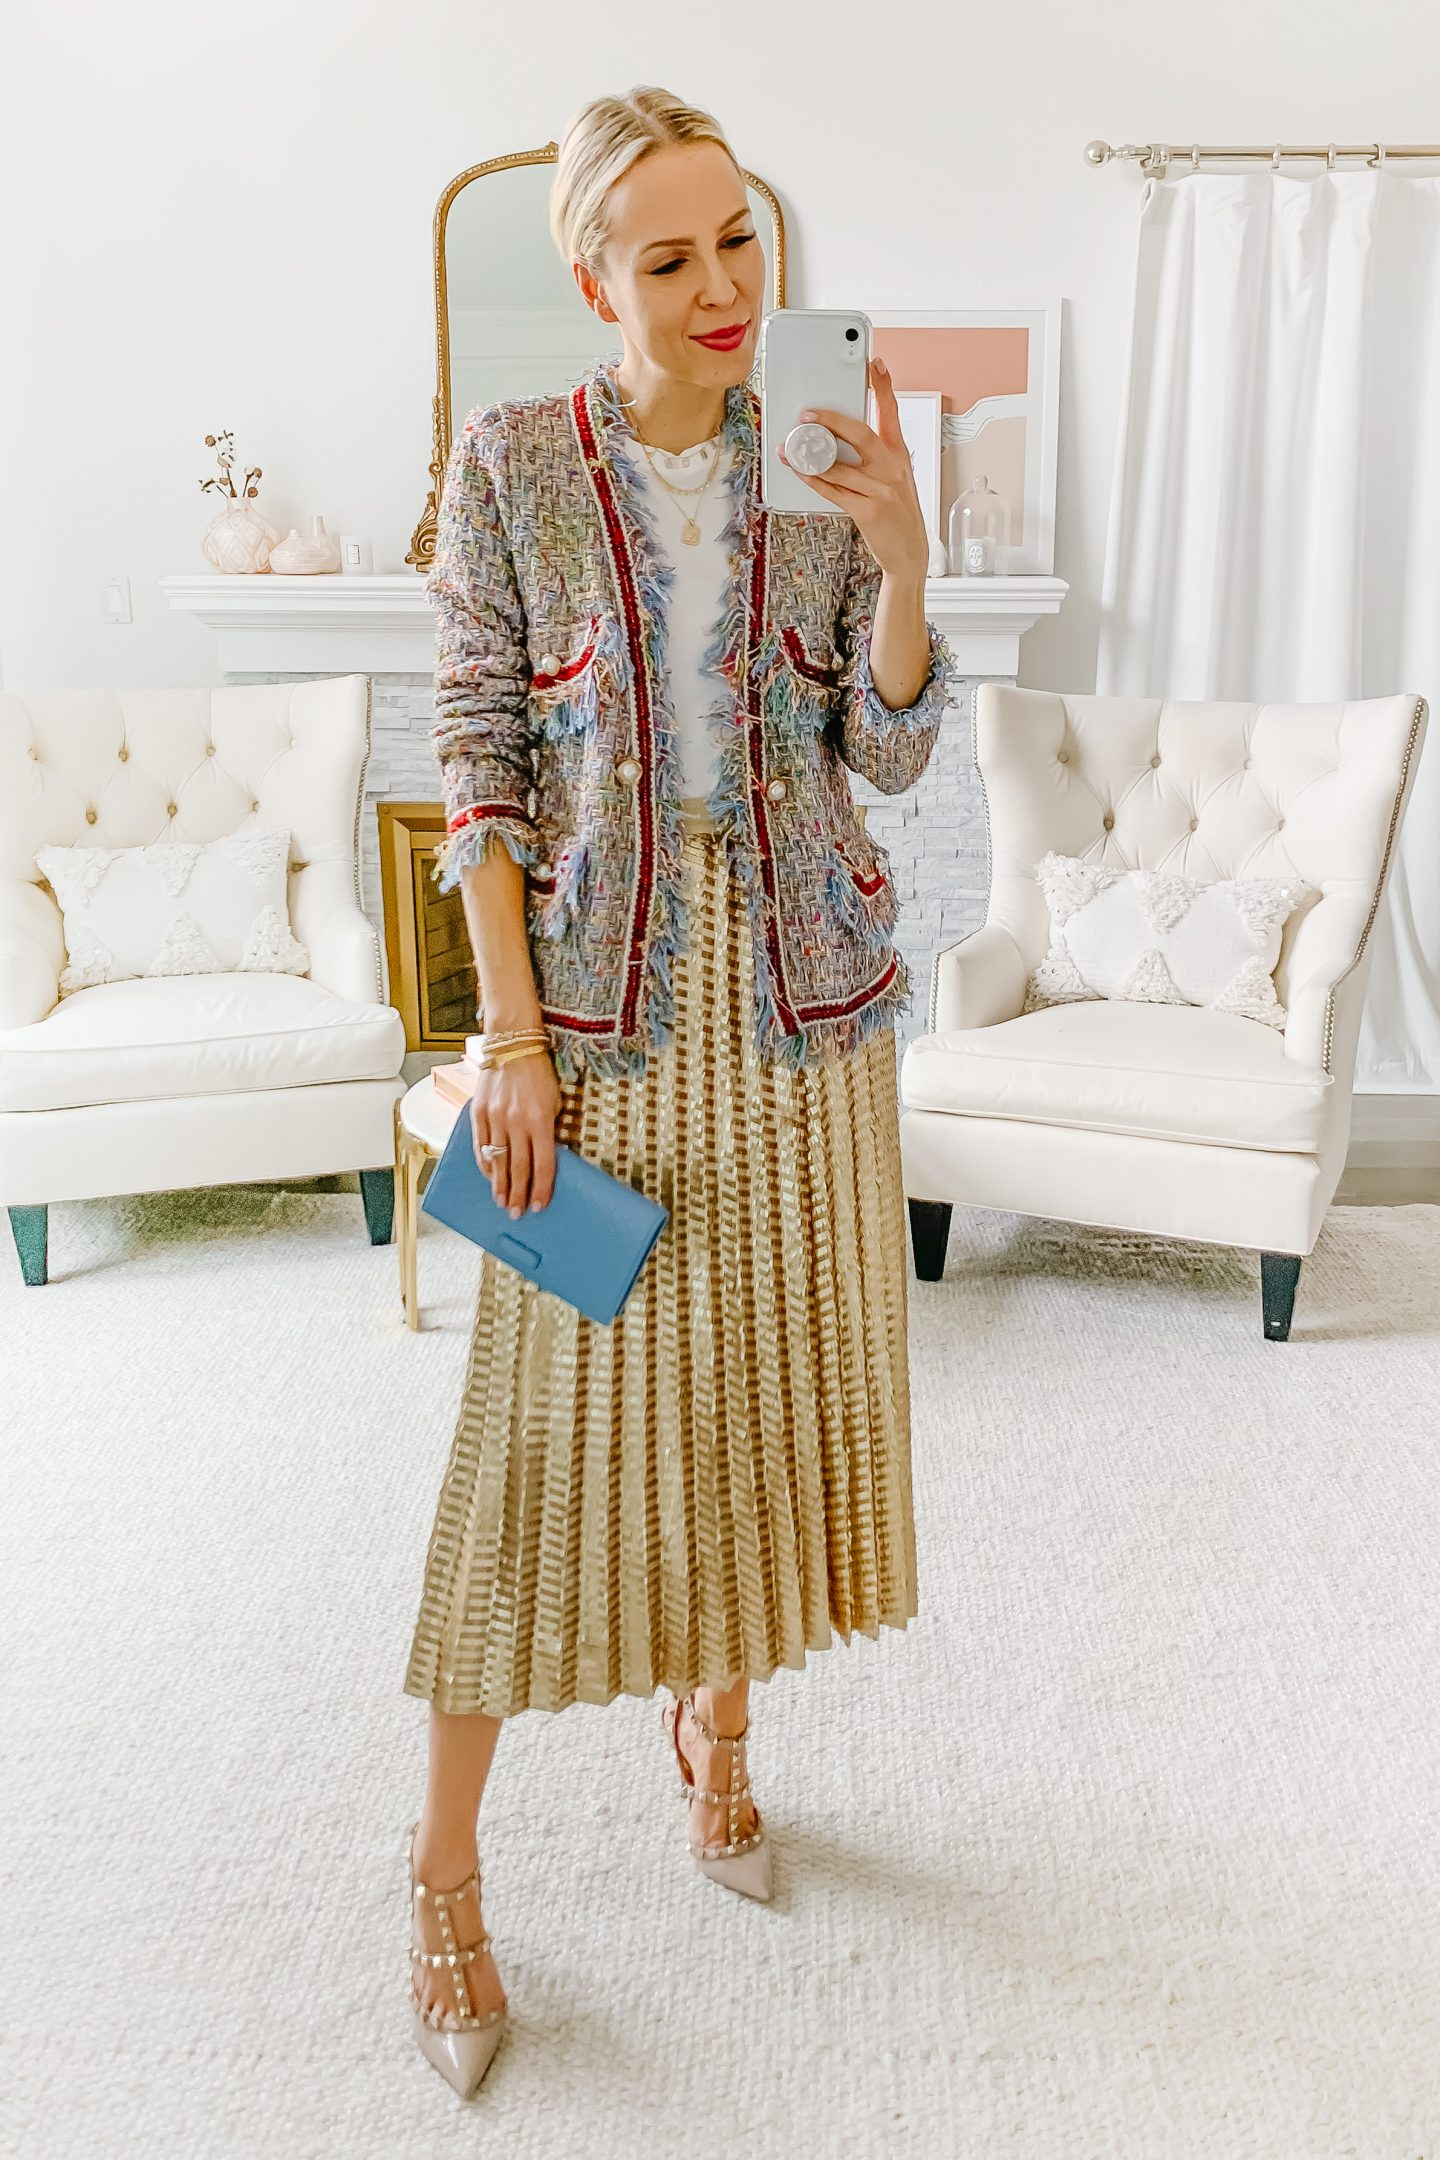 Anthropologie Natalia Sequined Midi Skirt, styled 5 ways by top San Francisco fashion blogger Lombard and Fifth.